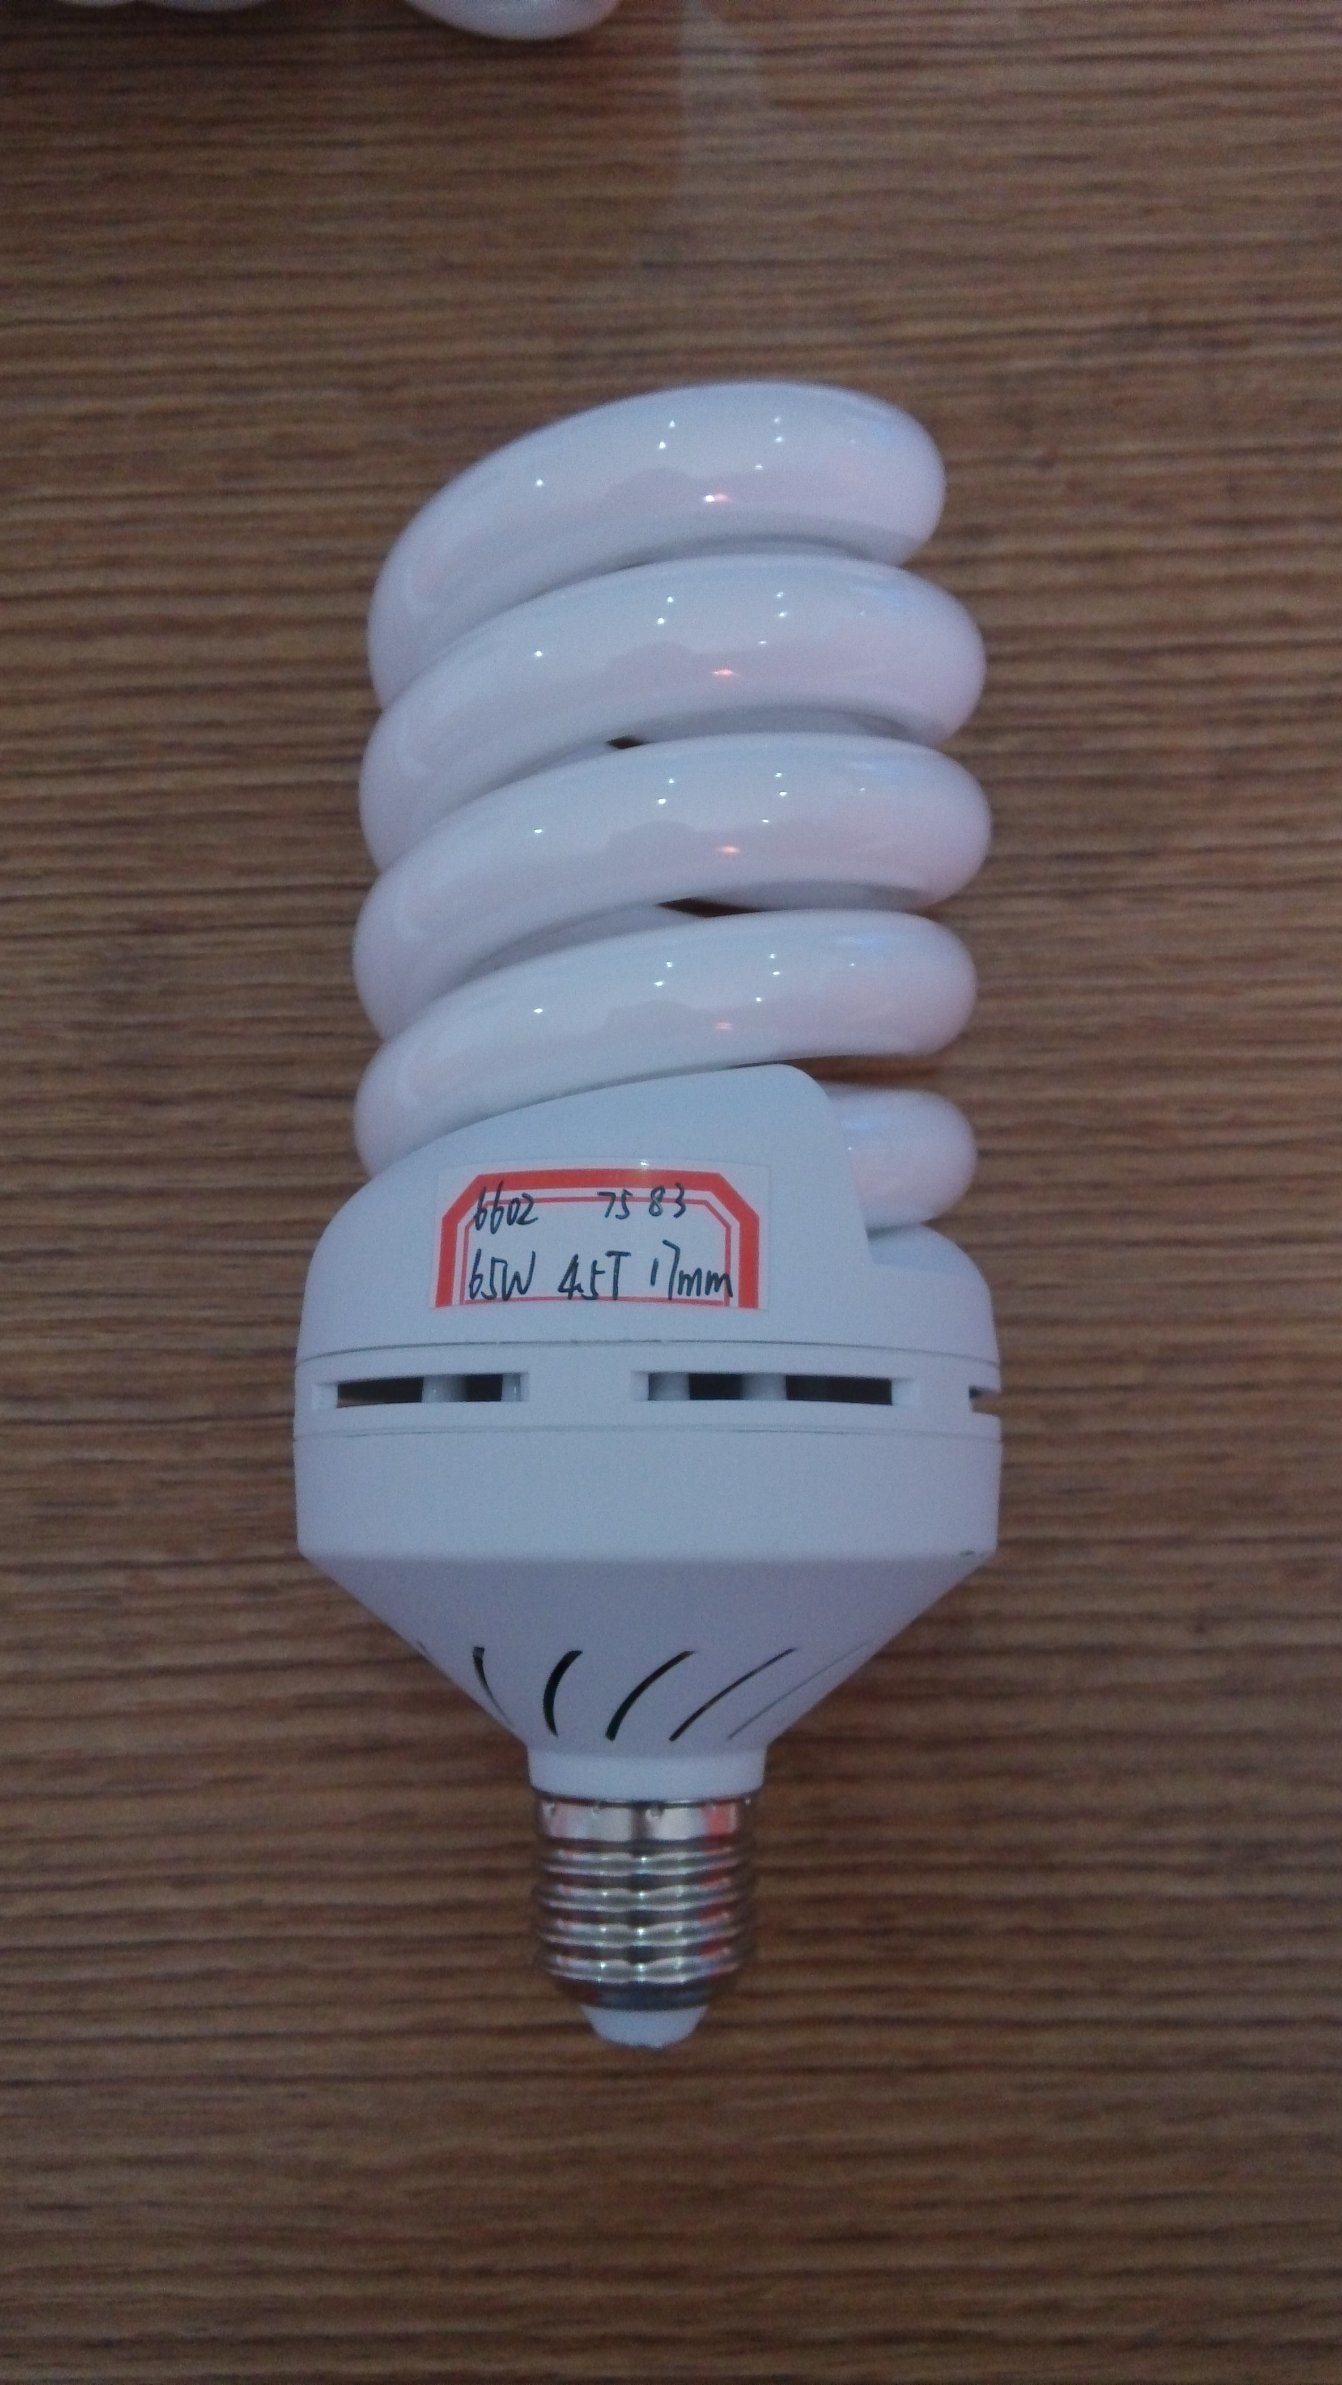 Energy Saving Lamp 65W 70W 75W 80W 85W Full Spiral Tri-Color E27/B22 220-240V